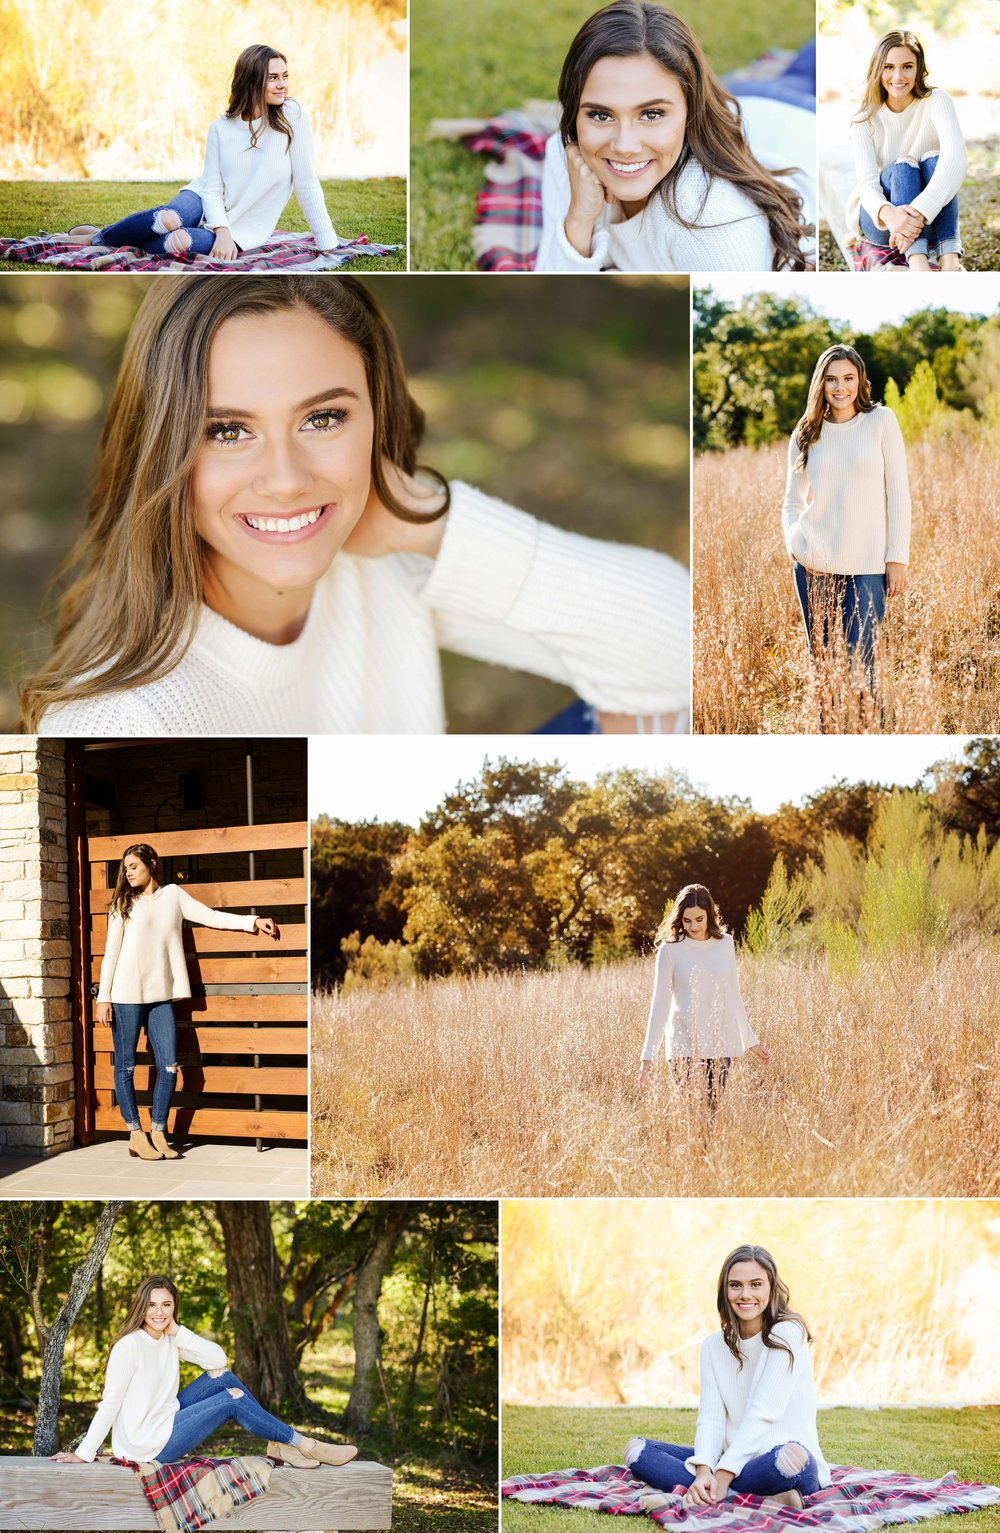 westlake senior portrait photographer, austin texas